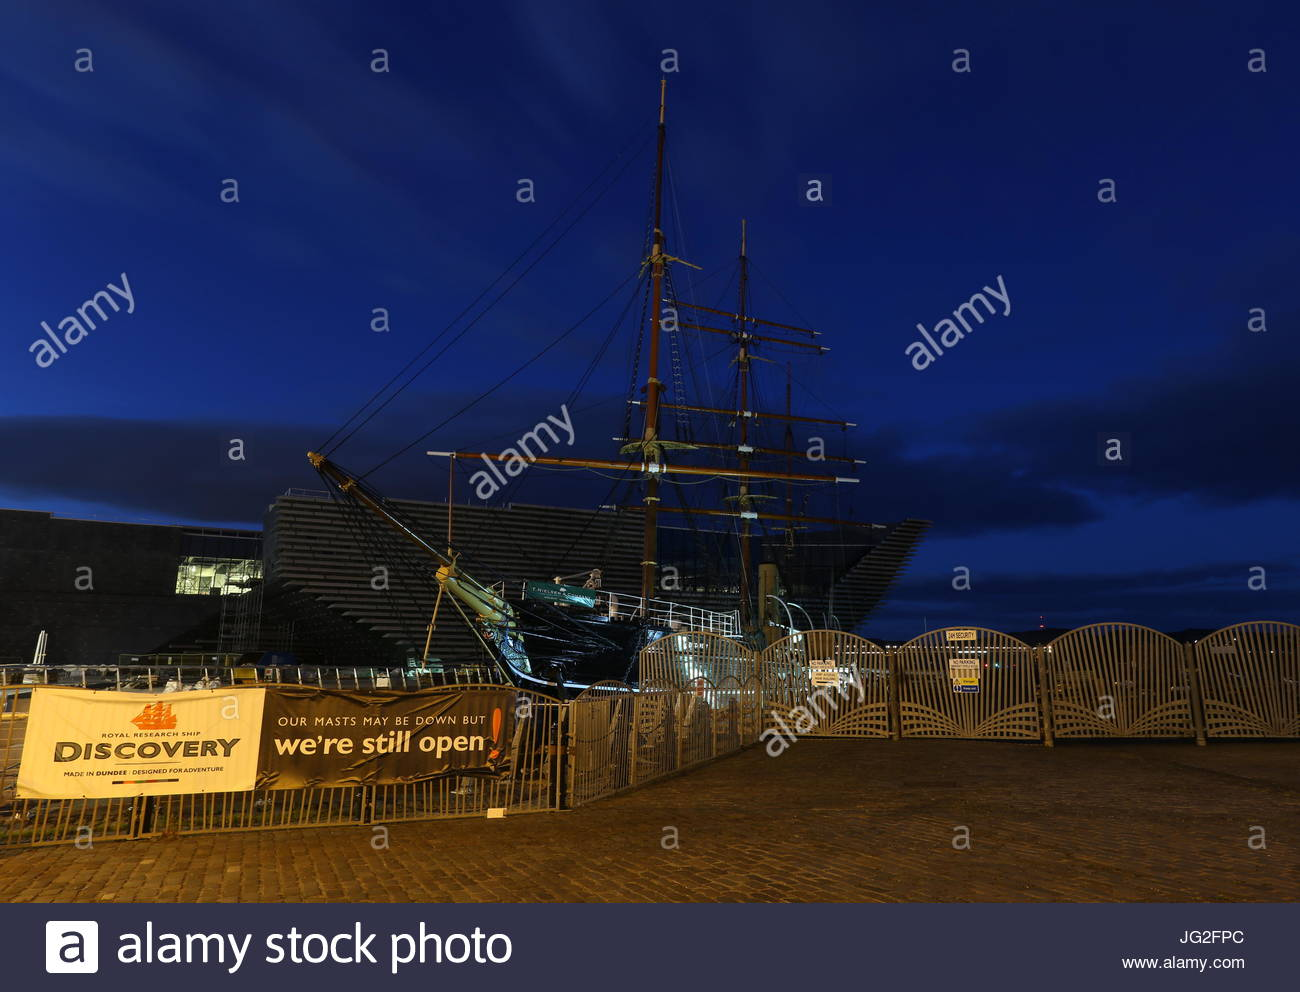 RRS Discovery by night Dundee Scotland  July 2017 Stock Photo